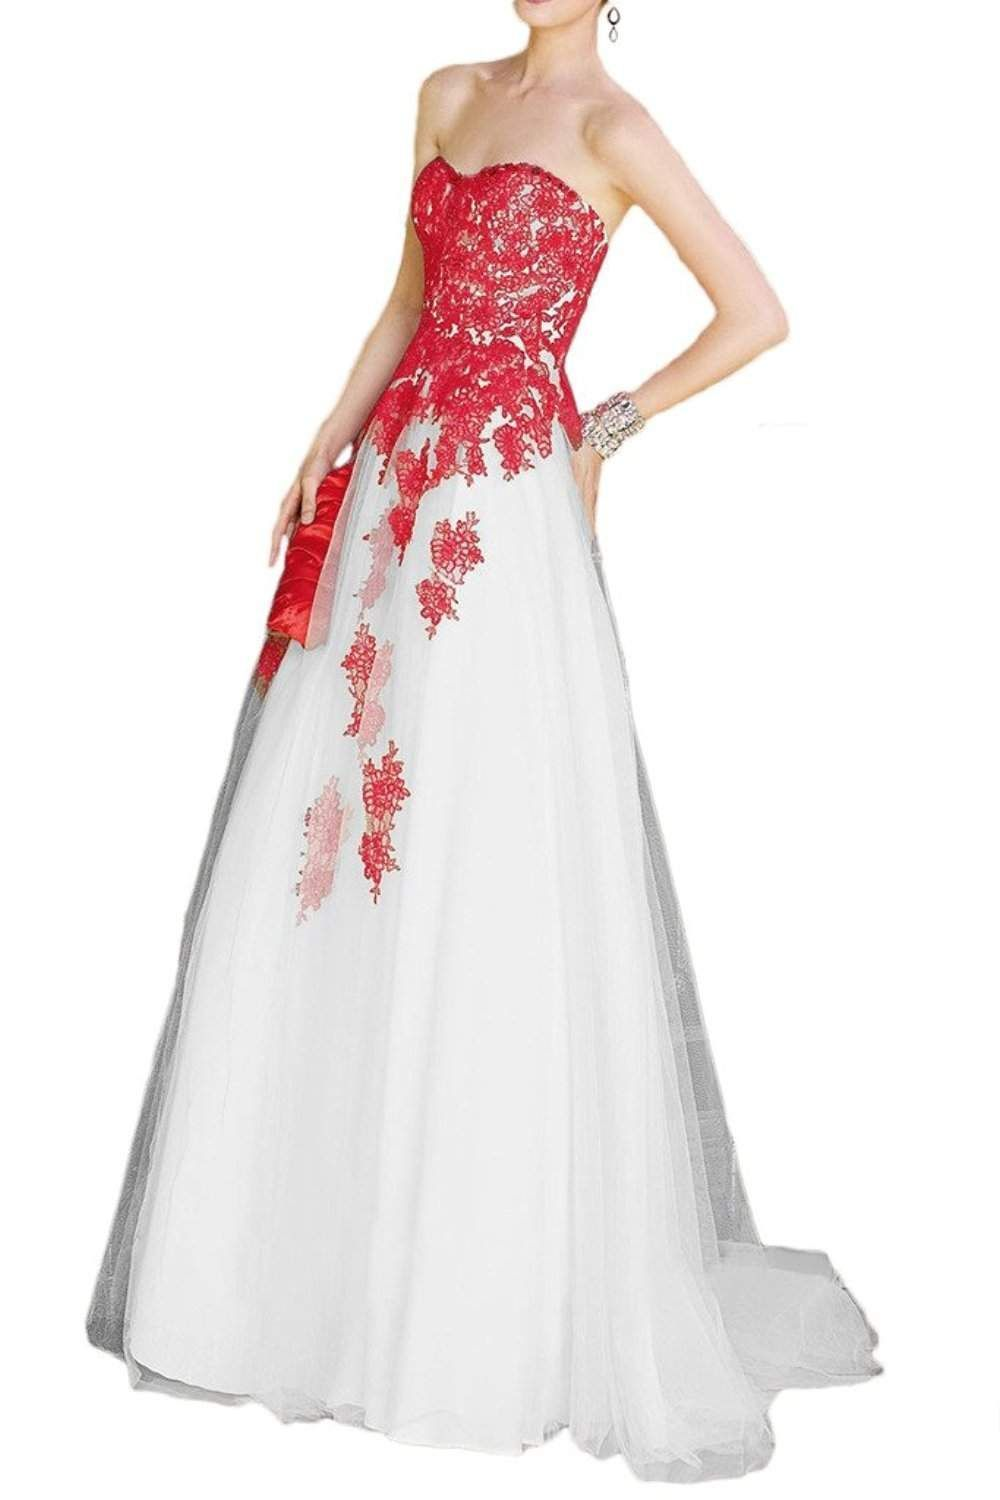 Wedding gown with red accents   Wedding Dress with Red Accents  Wedding Dresses for Guests